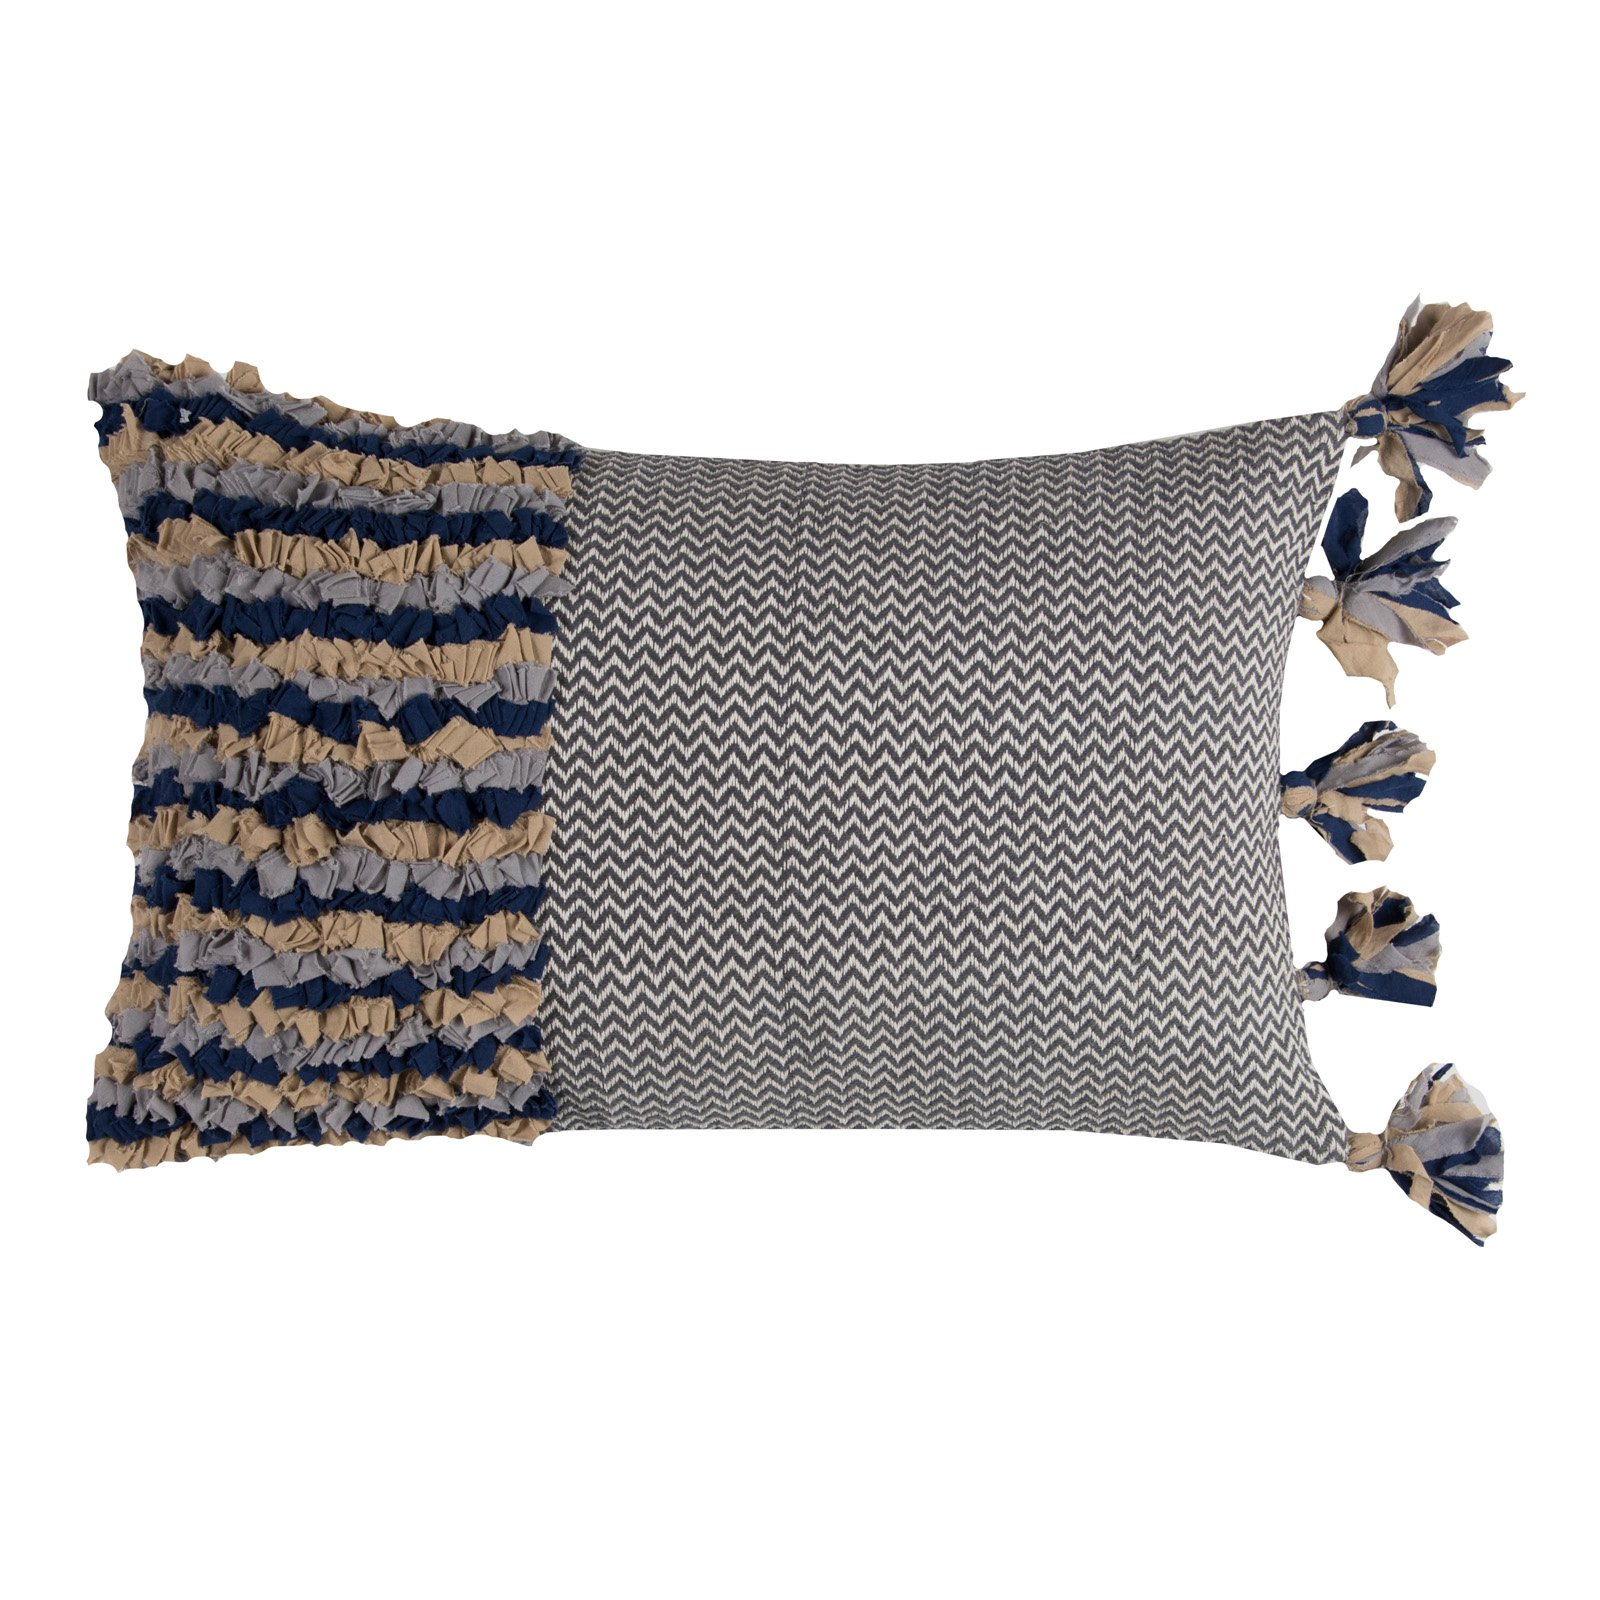 "Rizzy Home Decorative Poly Filled Throw Pillow Stripes And Ditsy With Tassels 11""X21"" Dark Blue"